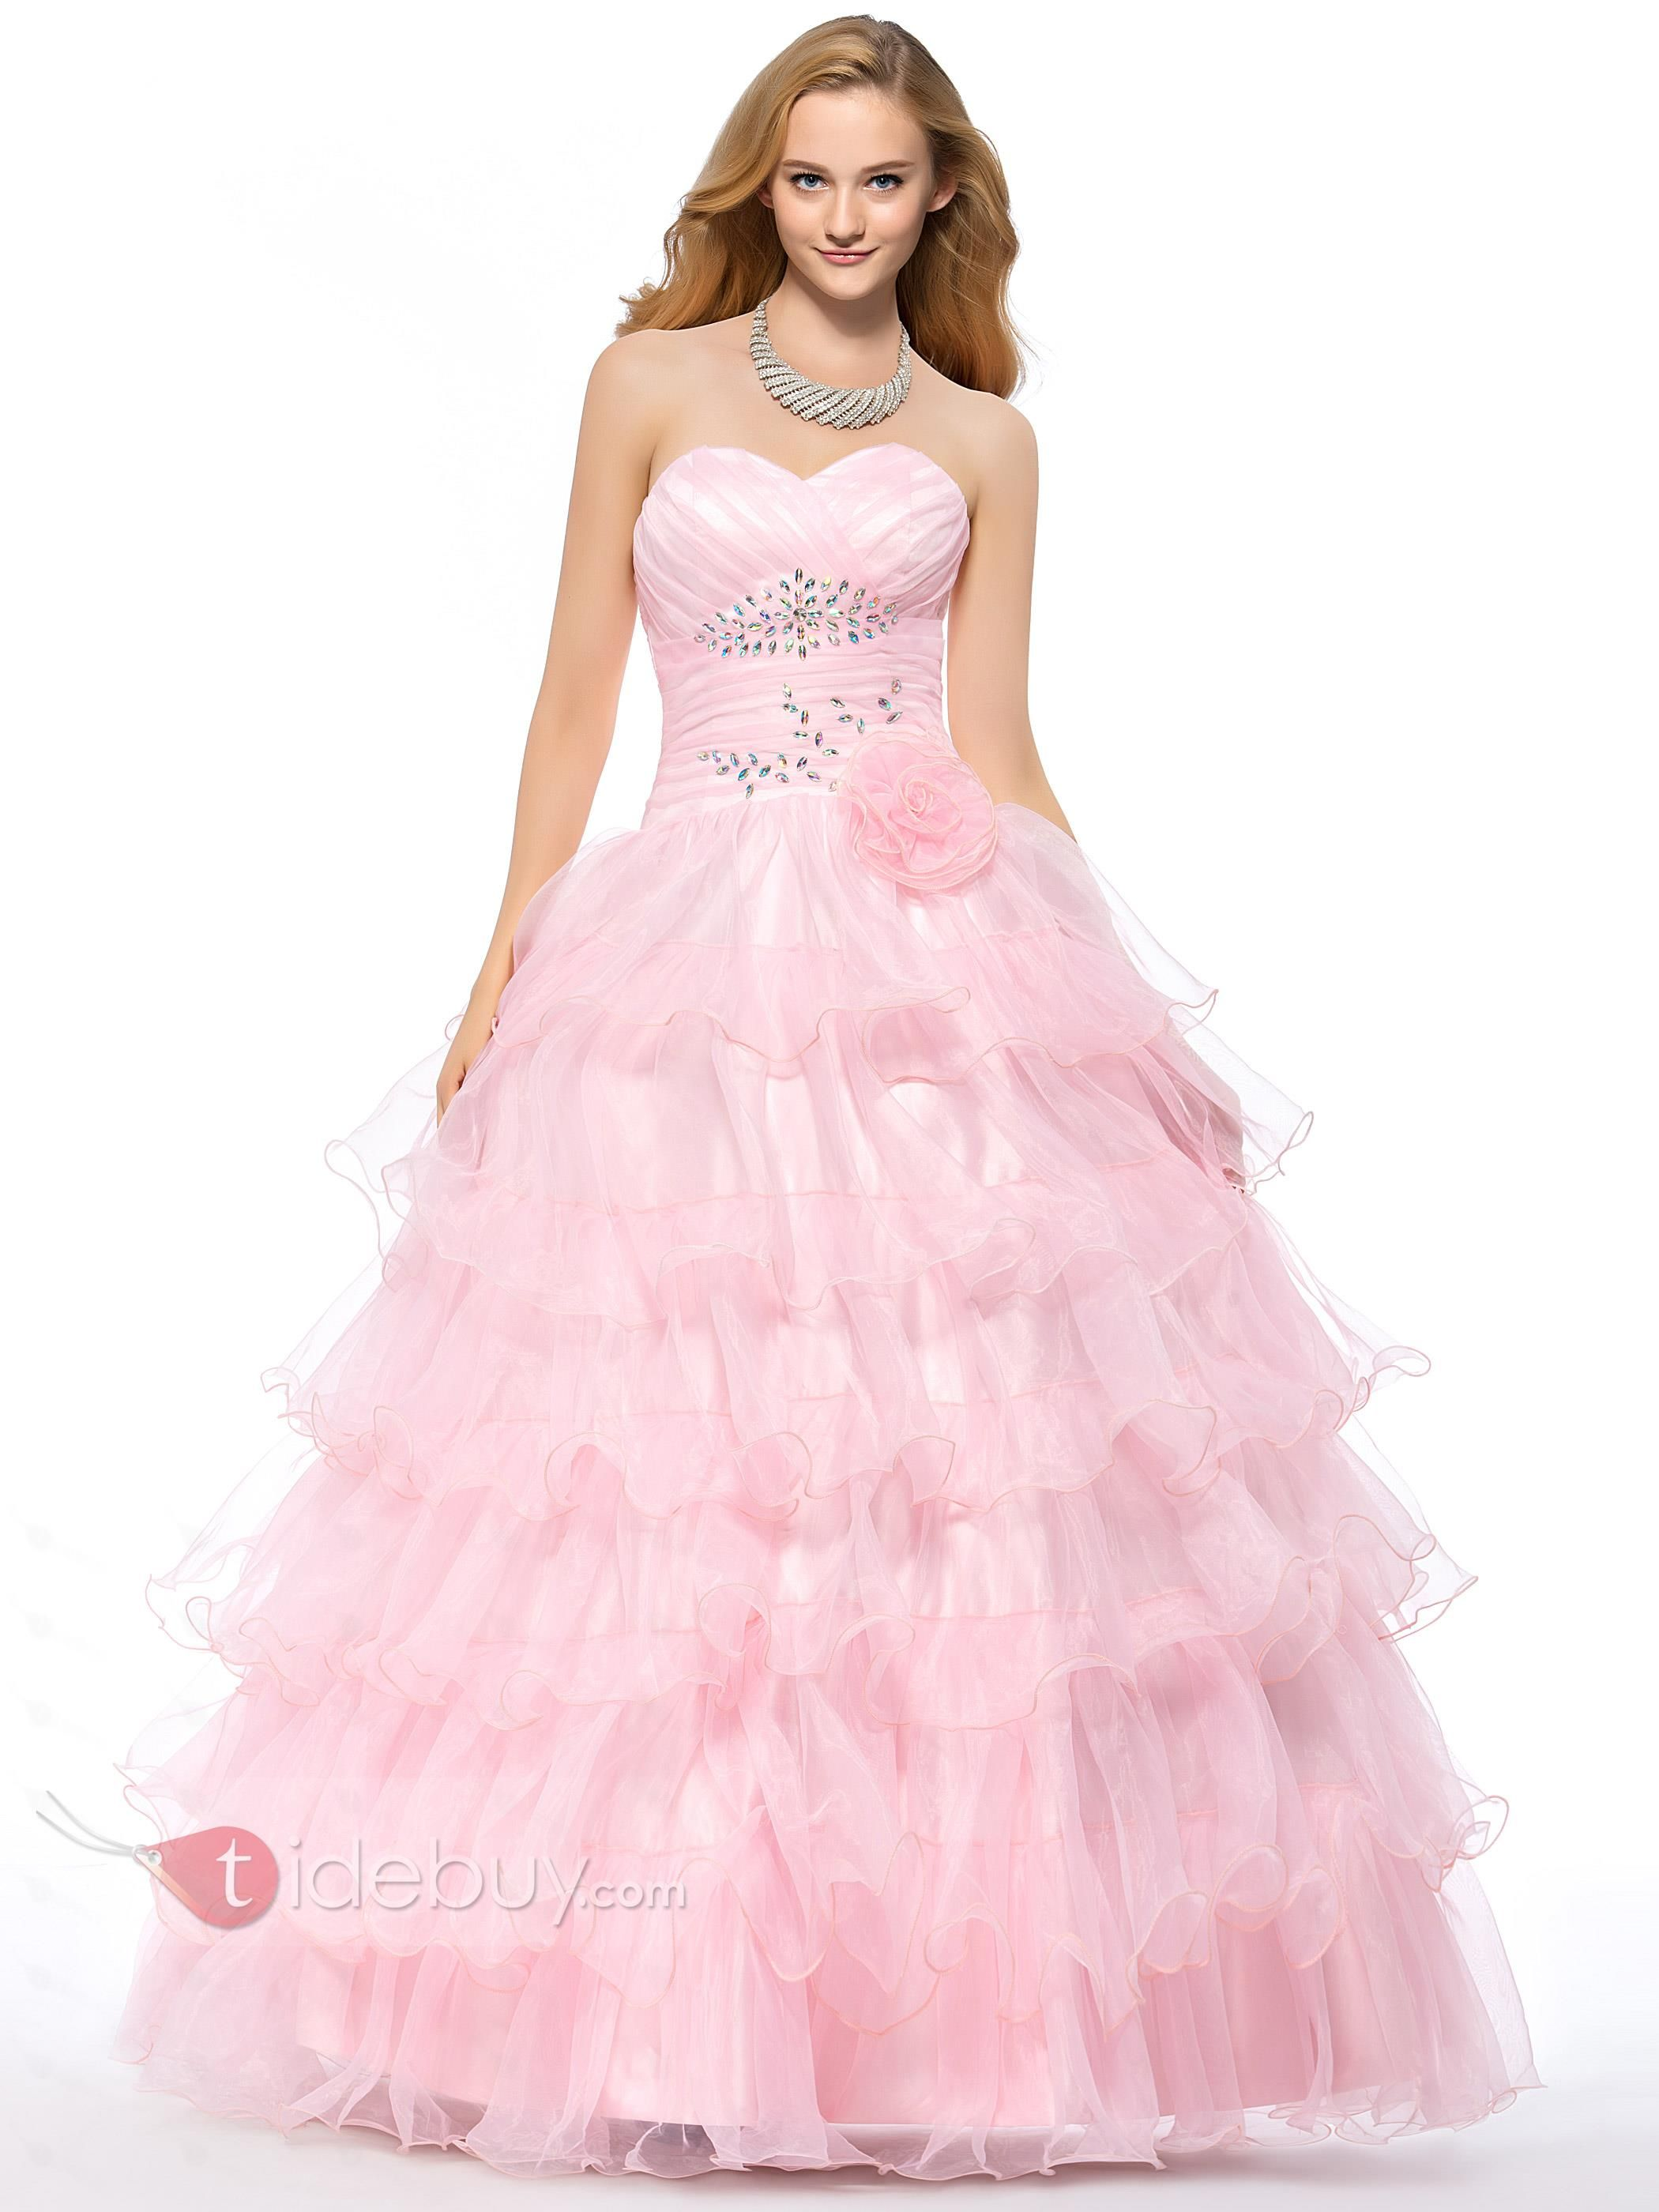 http://www.tidebuy.com/product/Lovely-Pure-Color-A-Line-Sweetheart ...